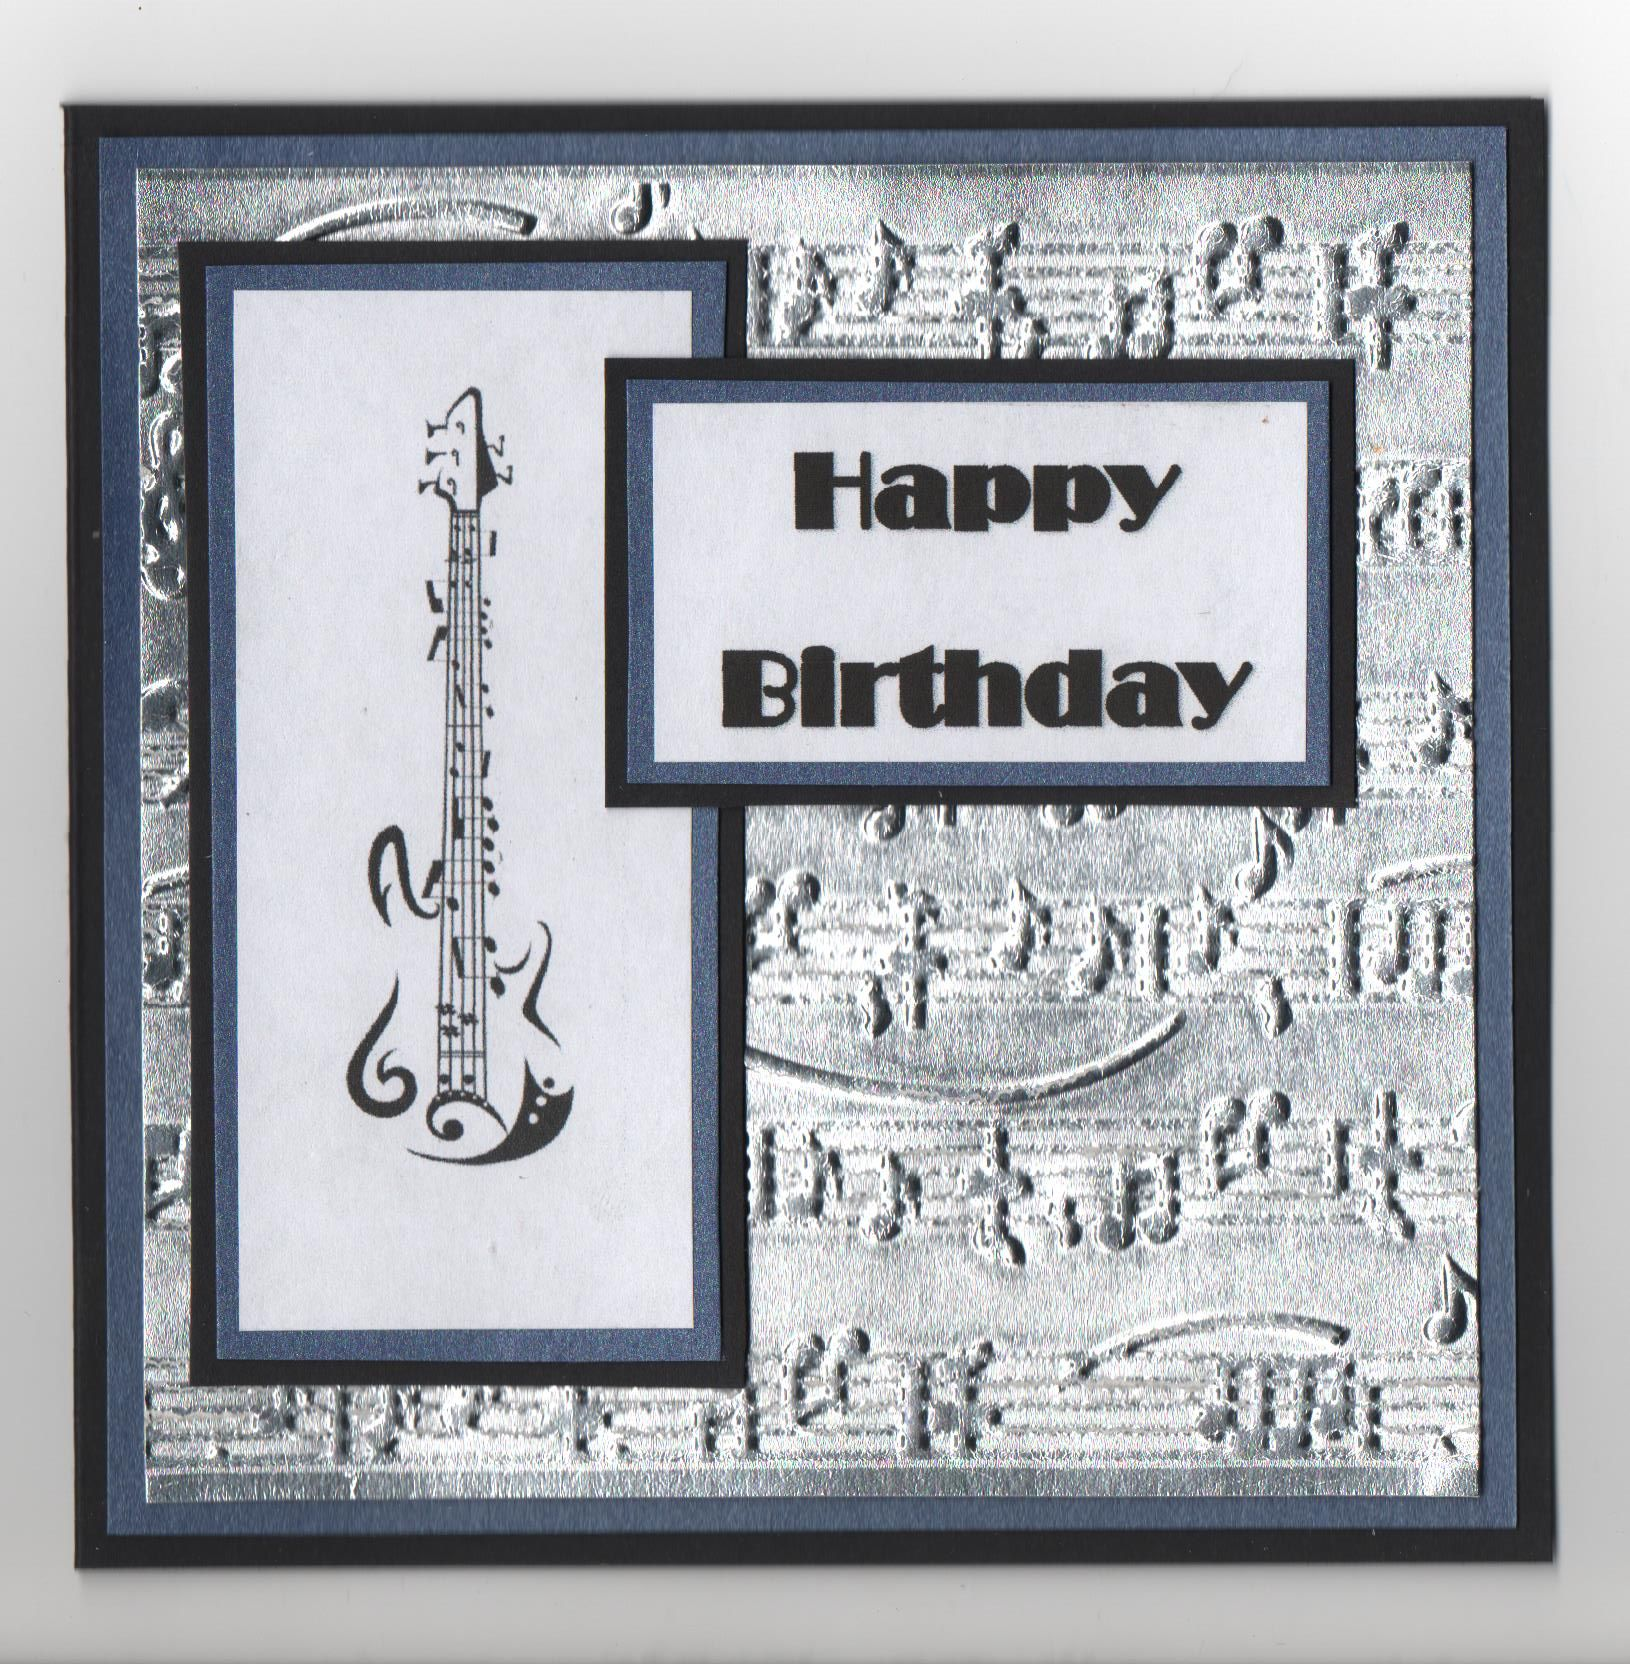 Pin By Carol Feige On Cards Sophisticated Black White Musical Cards Embossed Cards Inspirational Cards